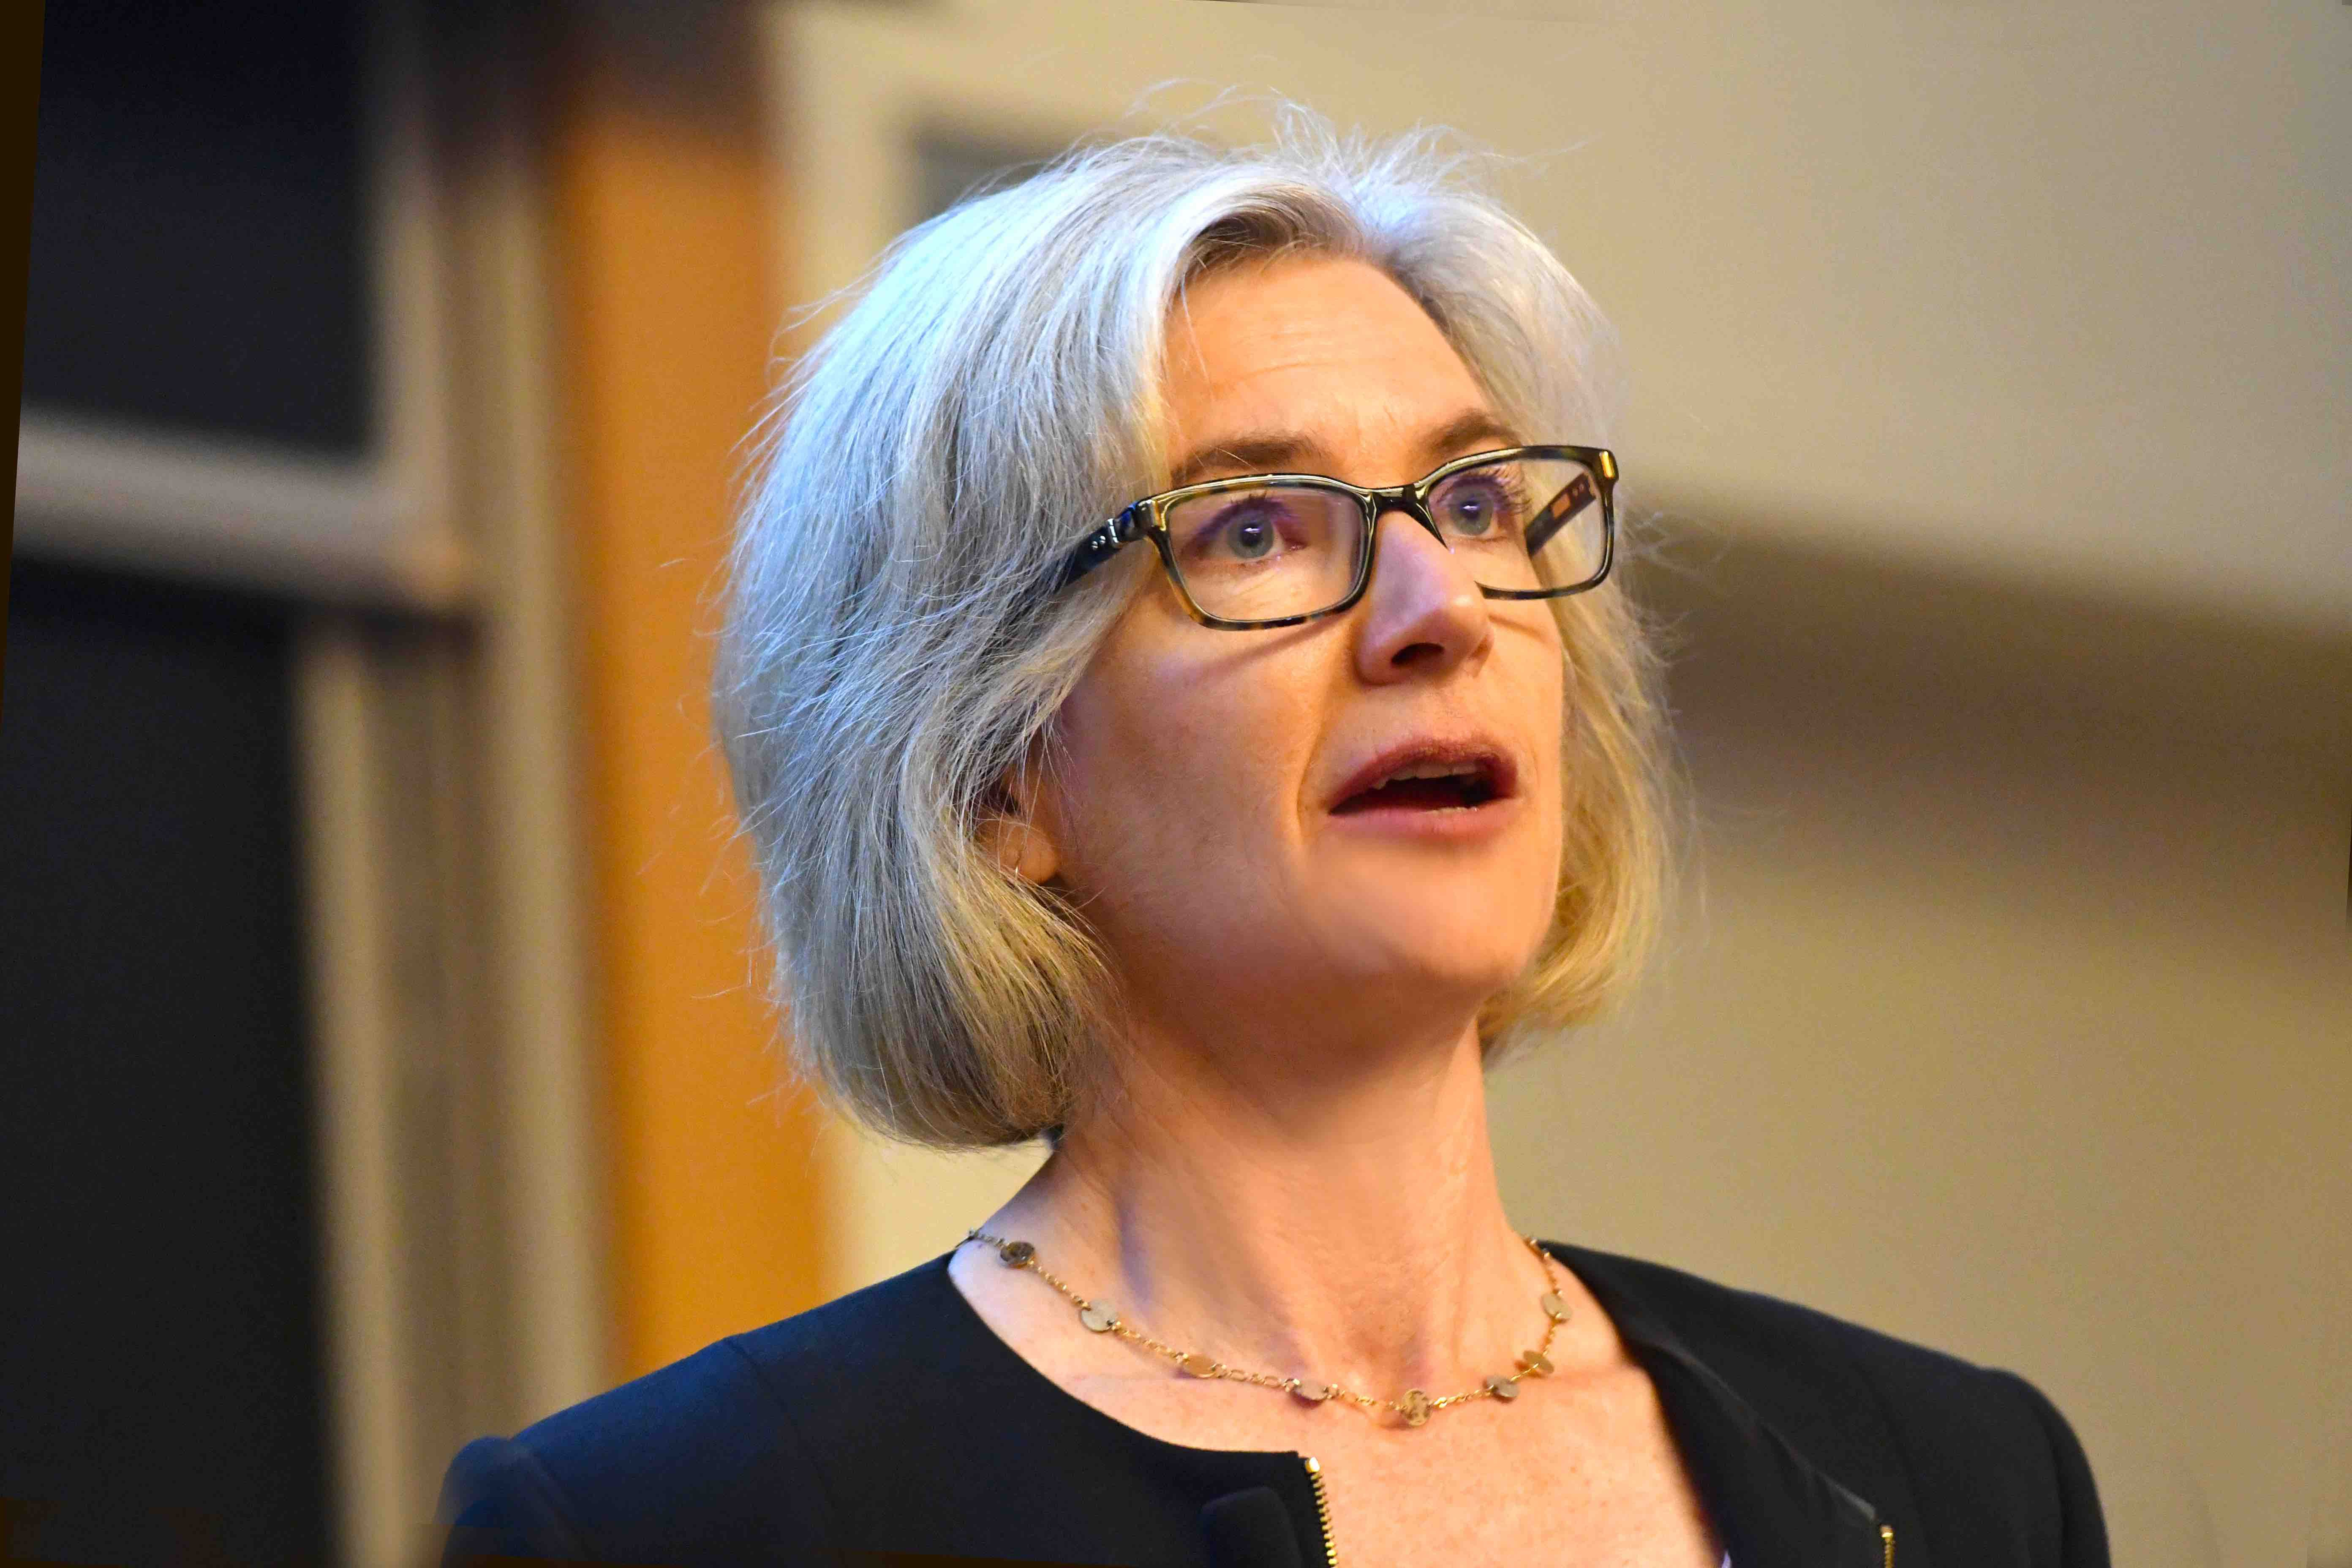 Jennifer Doudna speaking at a conference